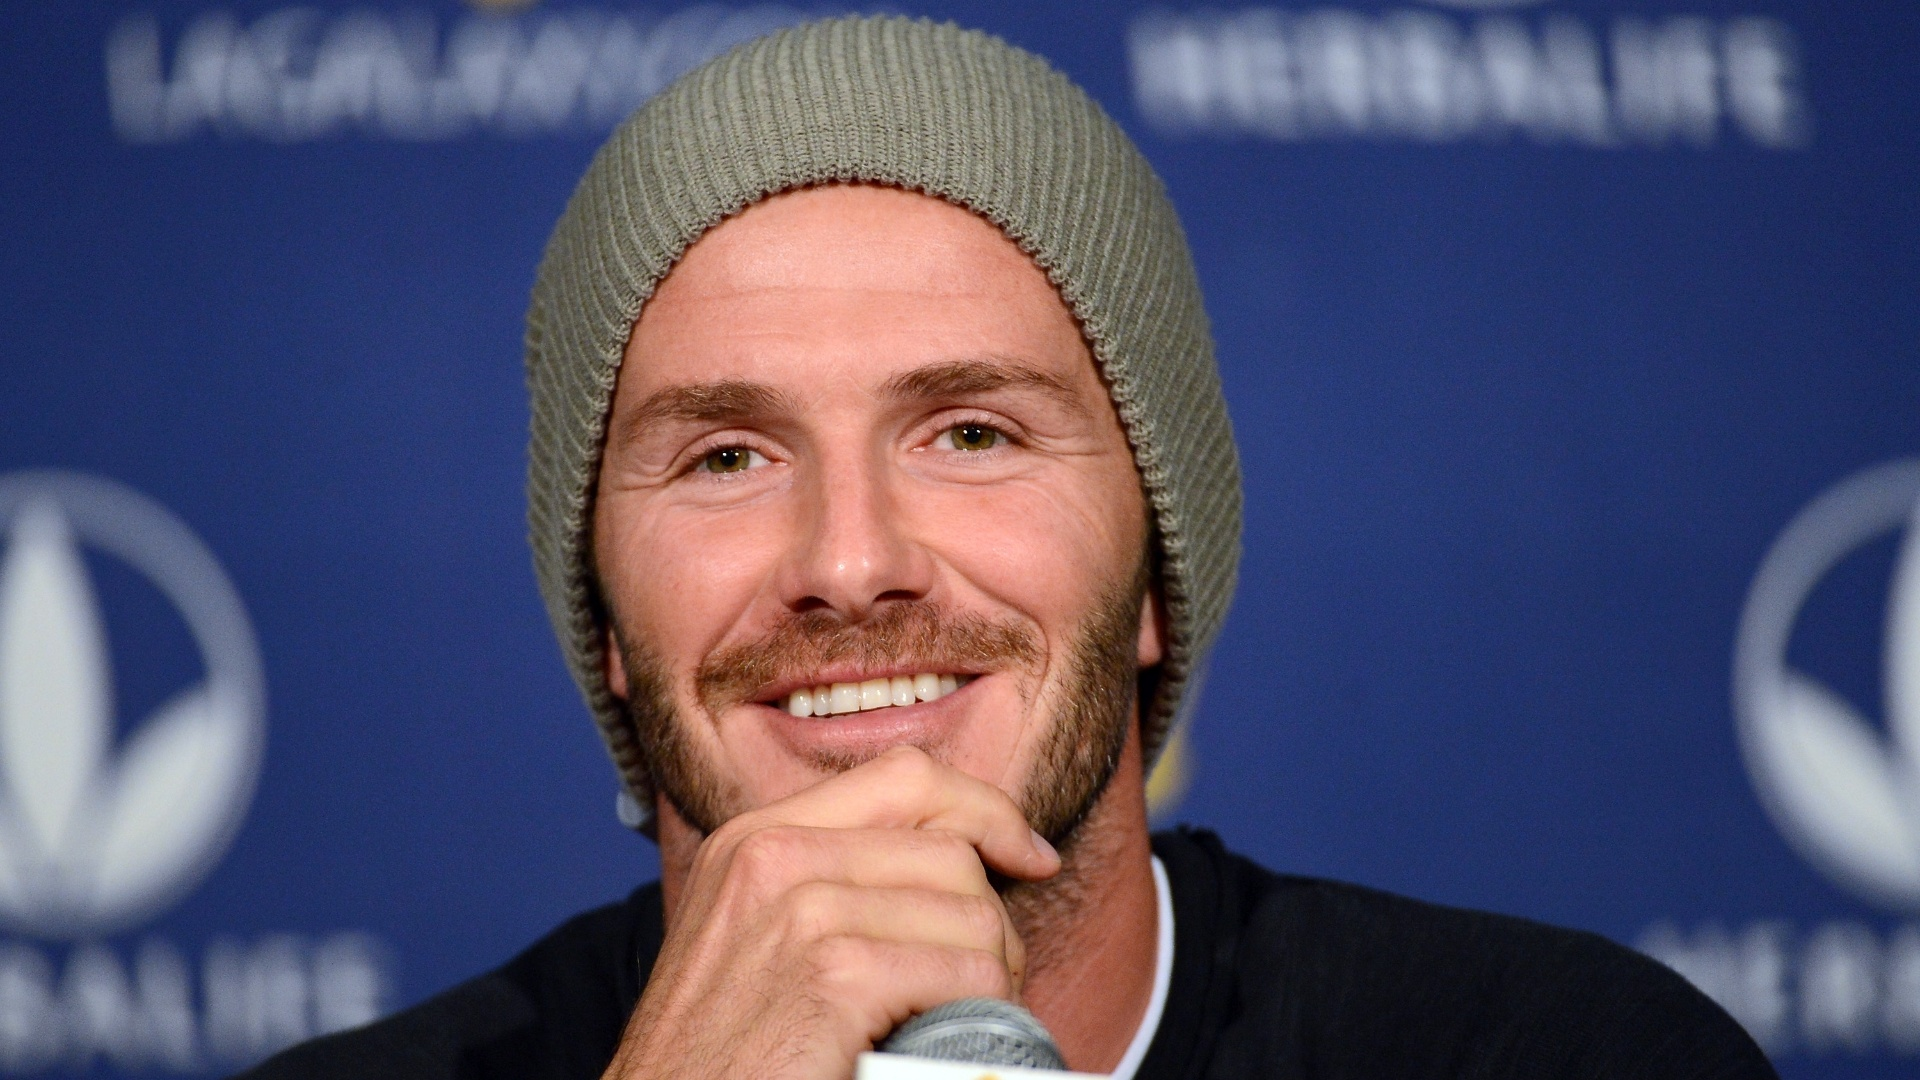 29.nov.2012 - David Beckham sorri durante coletiva do Los Angeles Galaxy, dos Estados Unidos